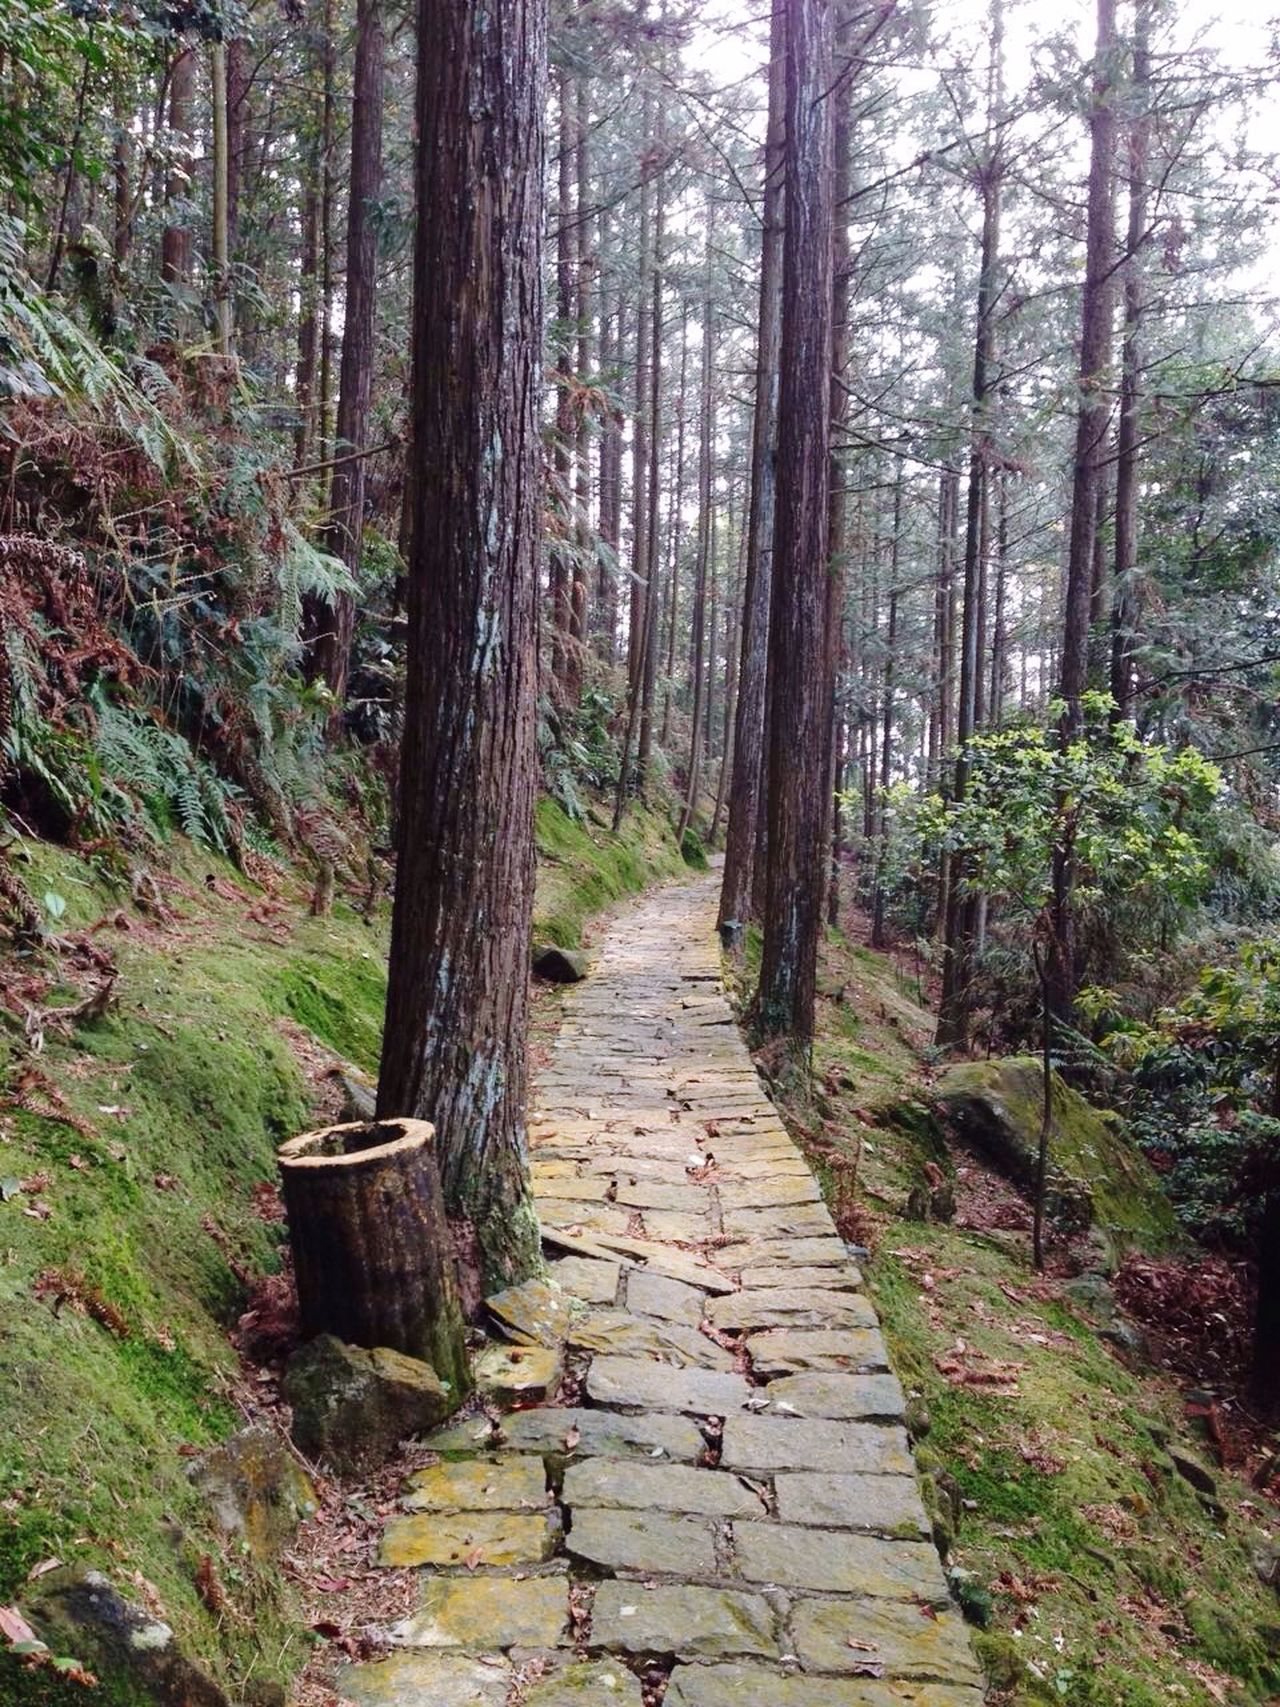 Good Moring Talking A Walk Forest Path Mountain Forest Path Walk In The Woods Where are you heading to ? Stone Path